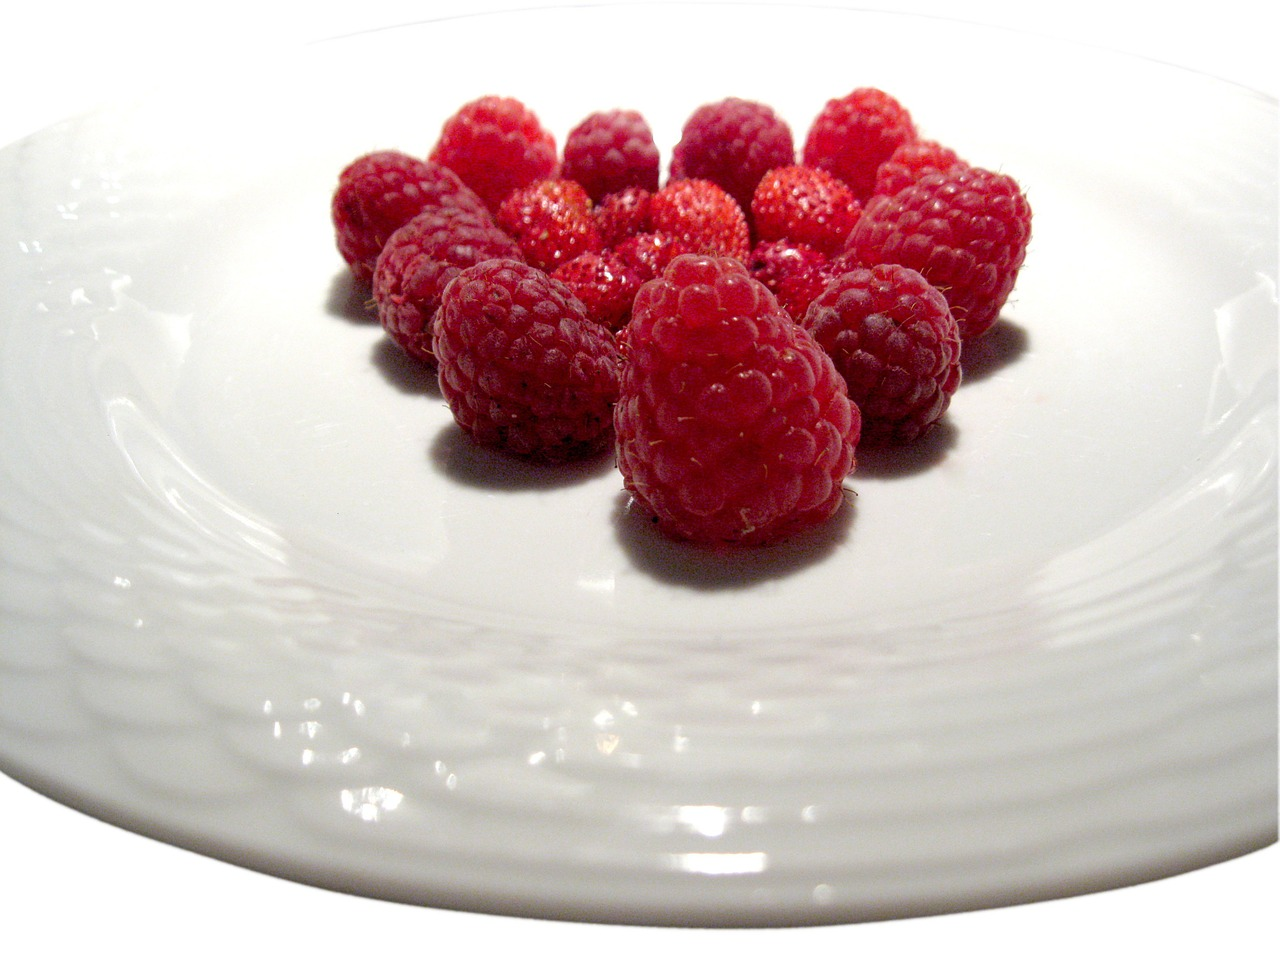 raspberries berries sweet free photo